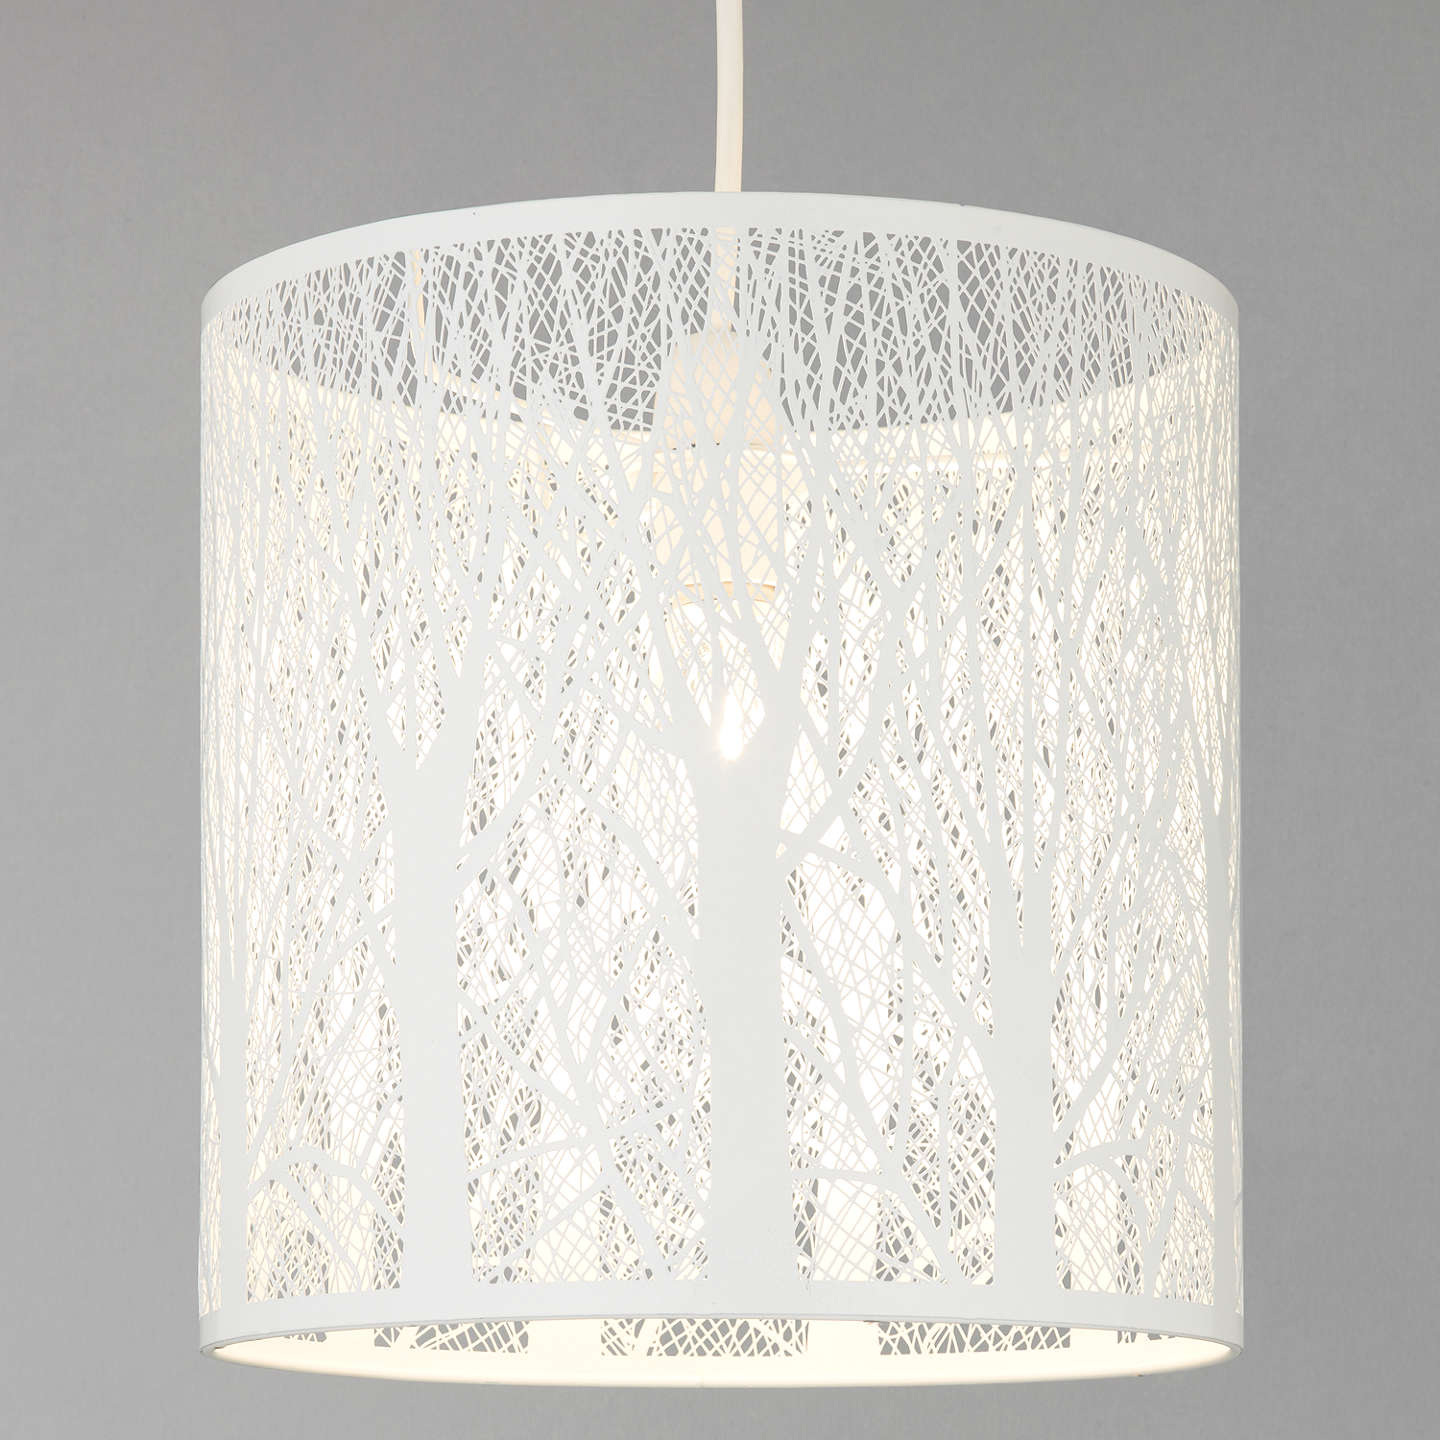 John lewis devon easy to fit ceiling shade small at john lewis buyjohn lewis devon easy to fit ceiling shade small white online at aloadofball Gallery